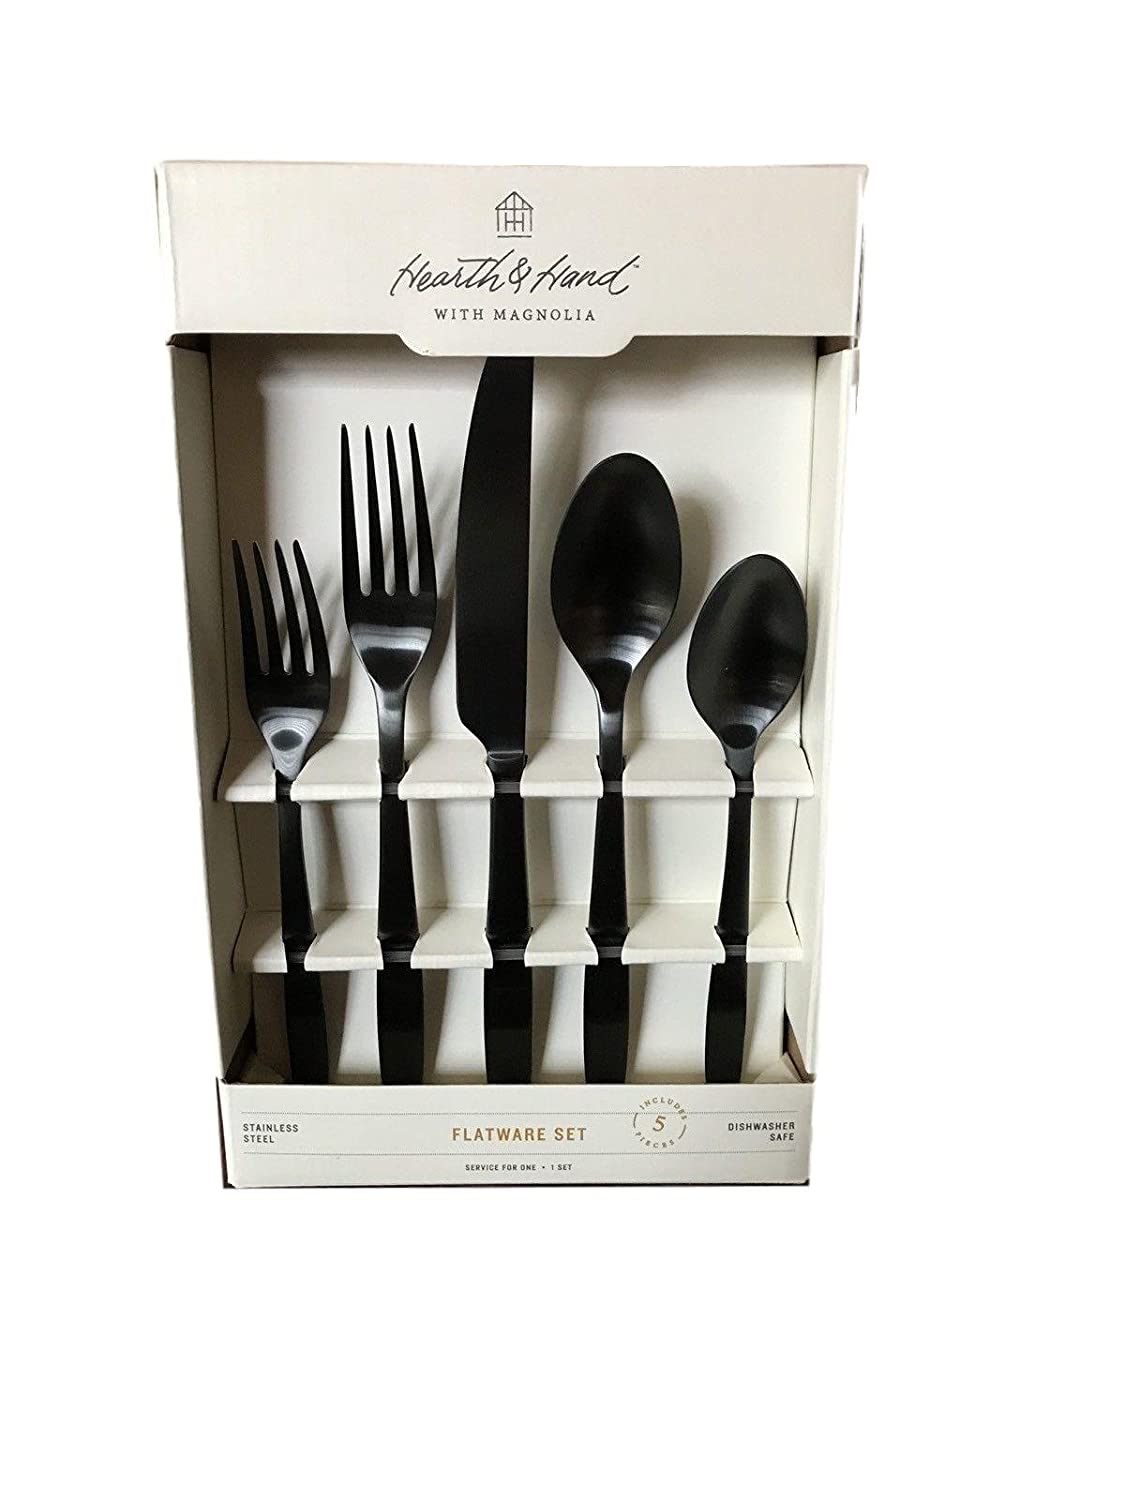 Hearth and Hand with Magnolia Flatware Set 5pc Matte Black